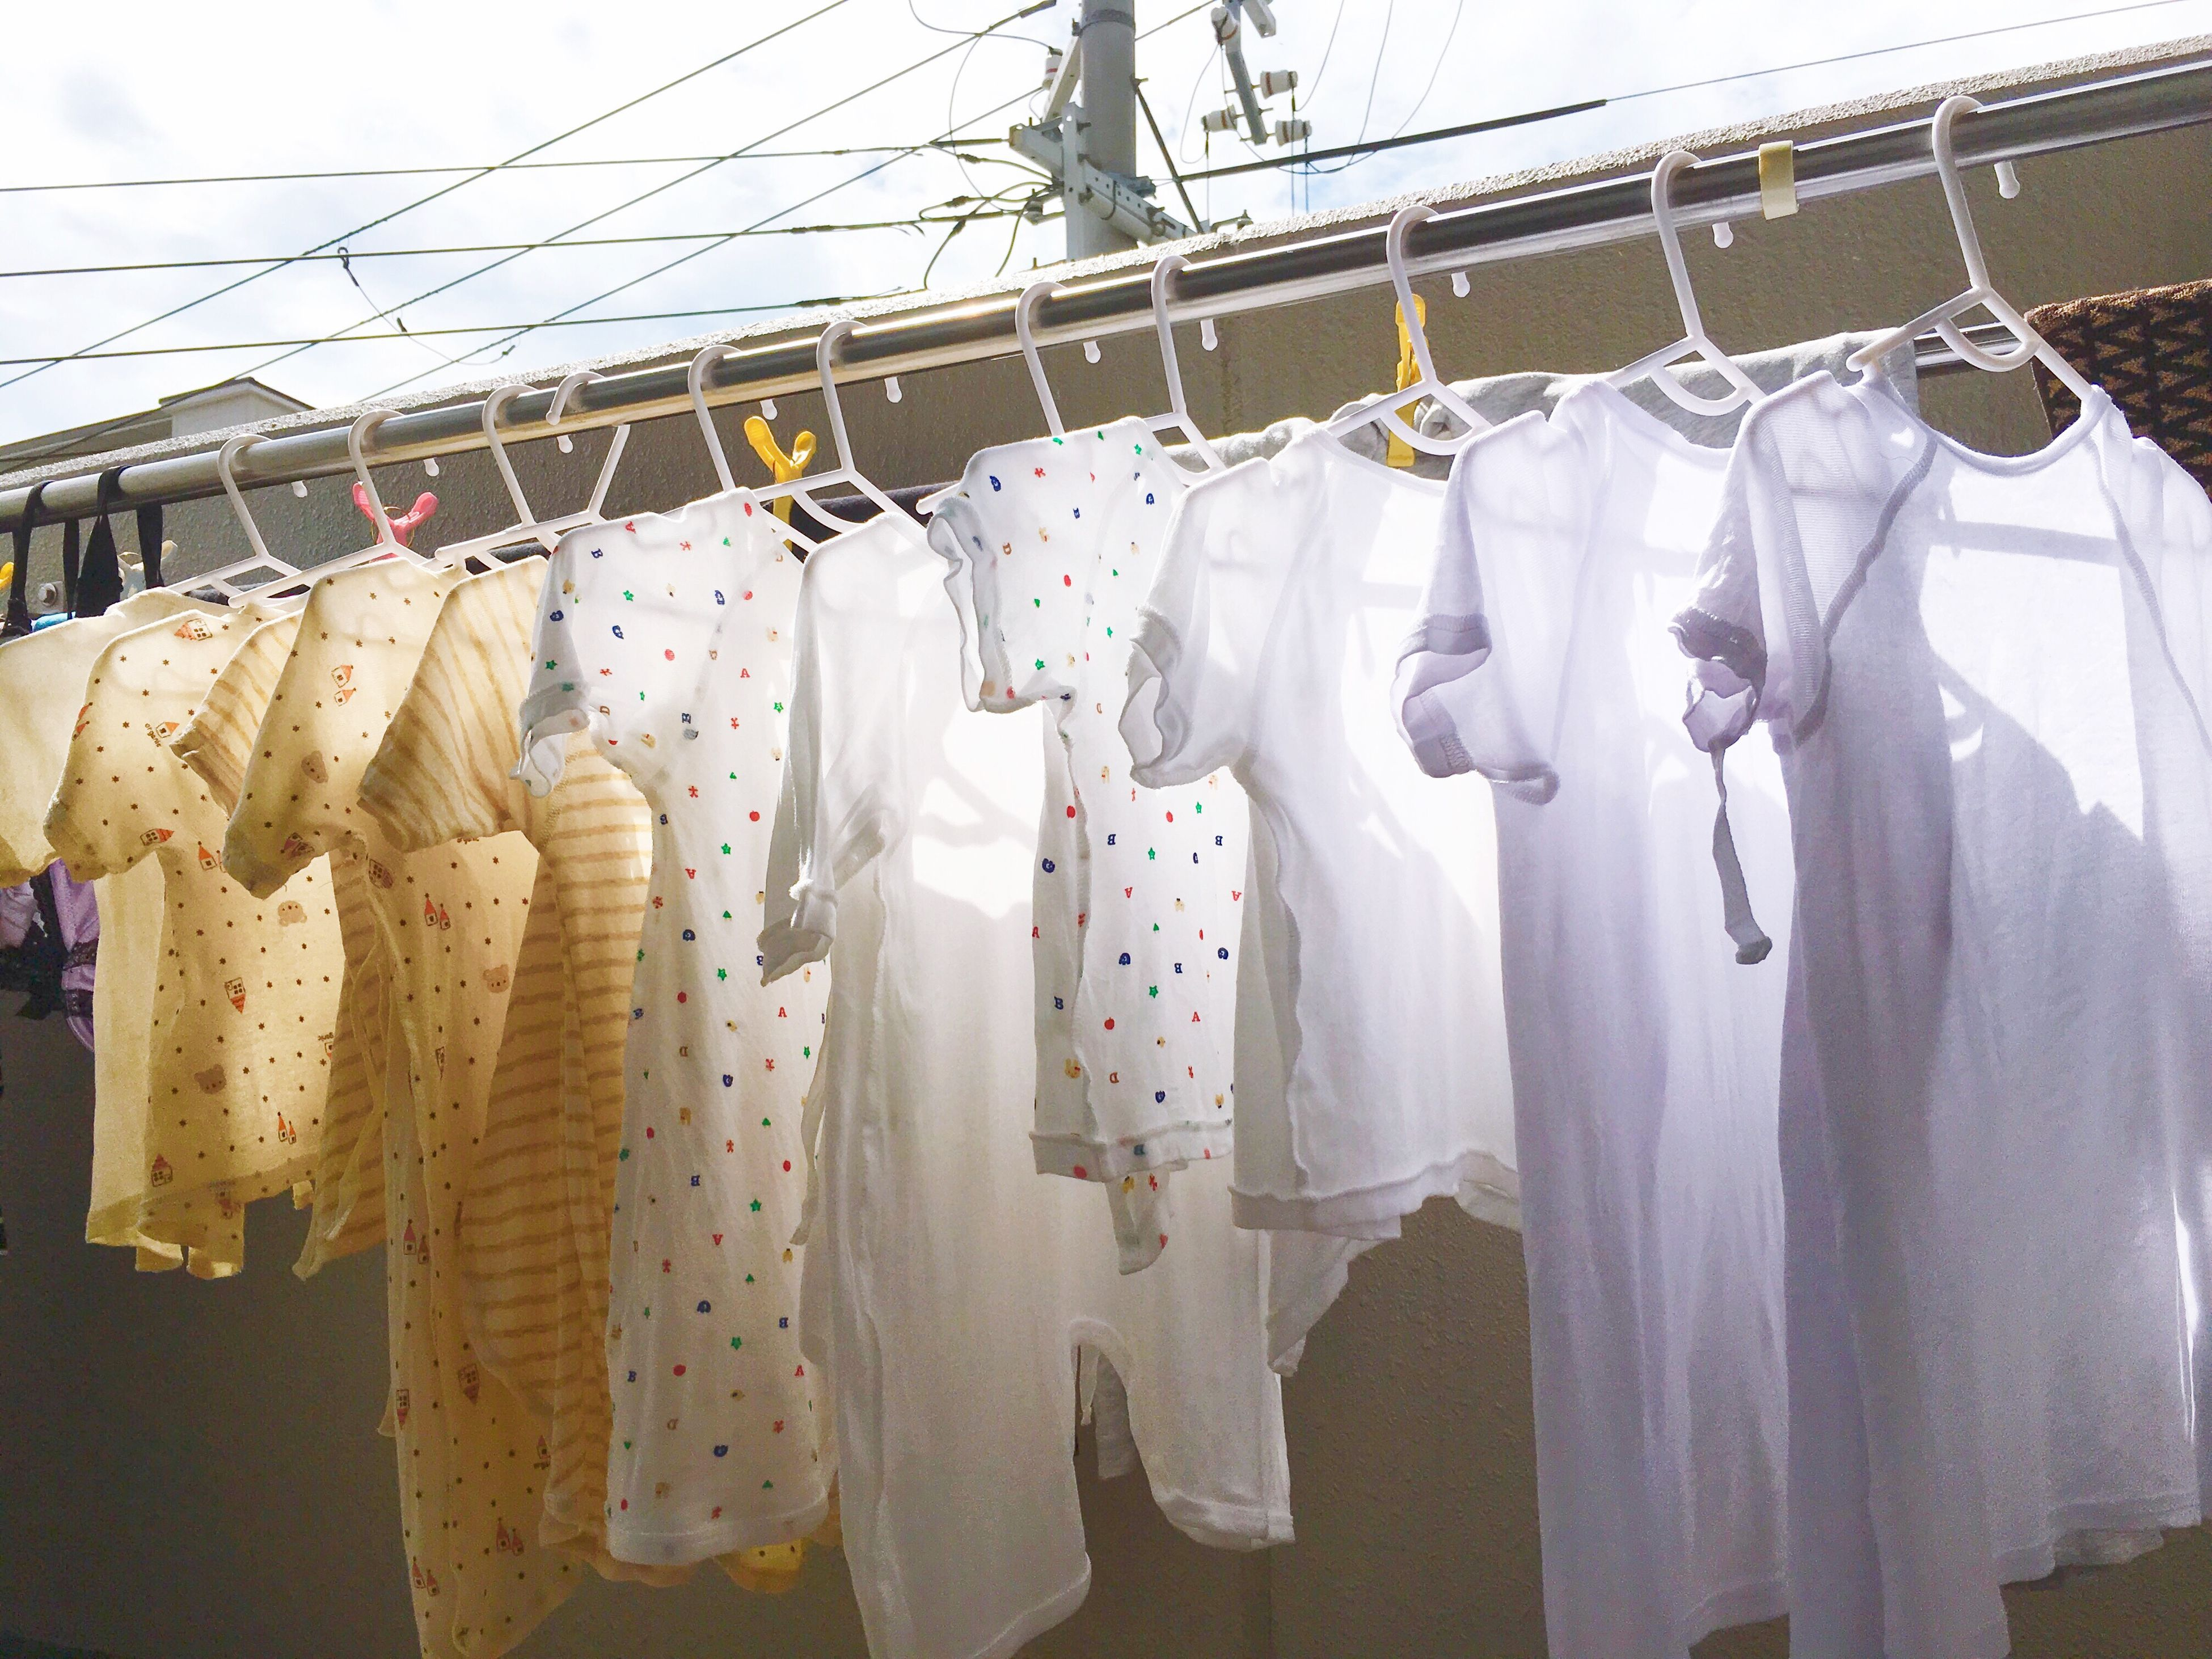 hanging, variation, clothing, in a row, for sale, large group of objects, choice, collection, display, abundance, laundry, retail display, clothes, retail, no people, day, sky